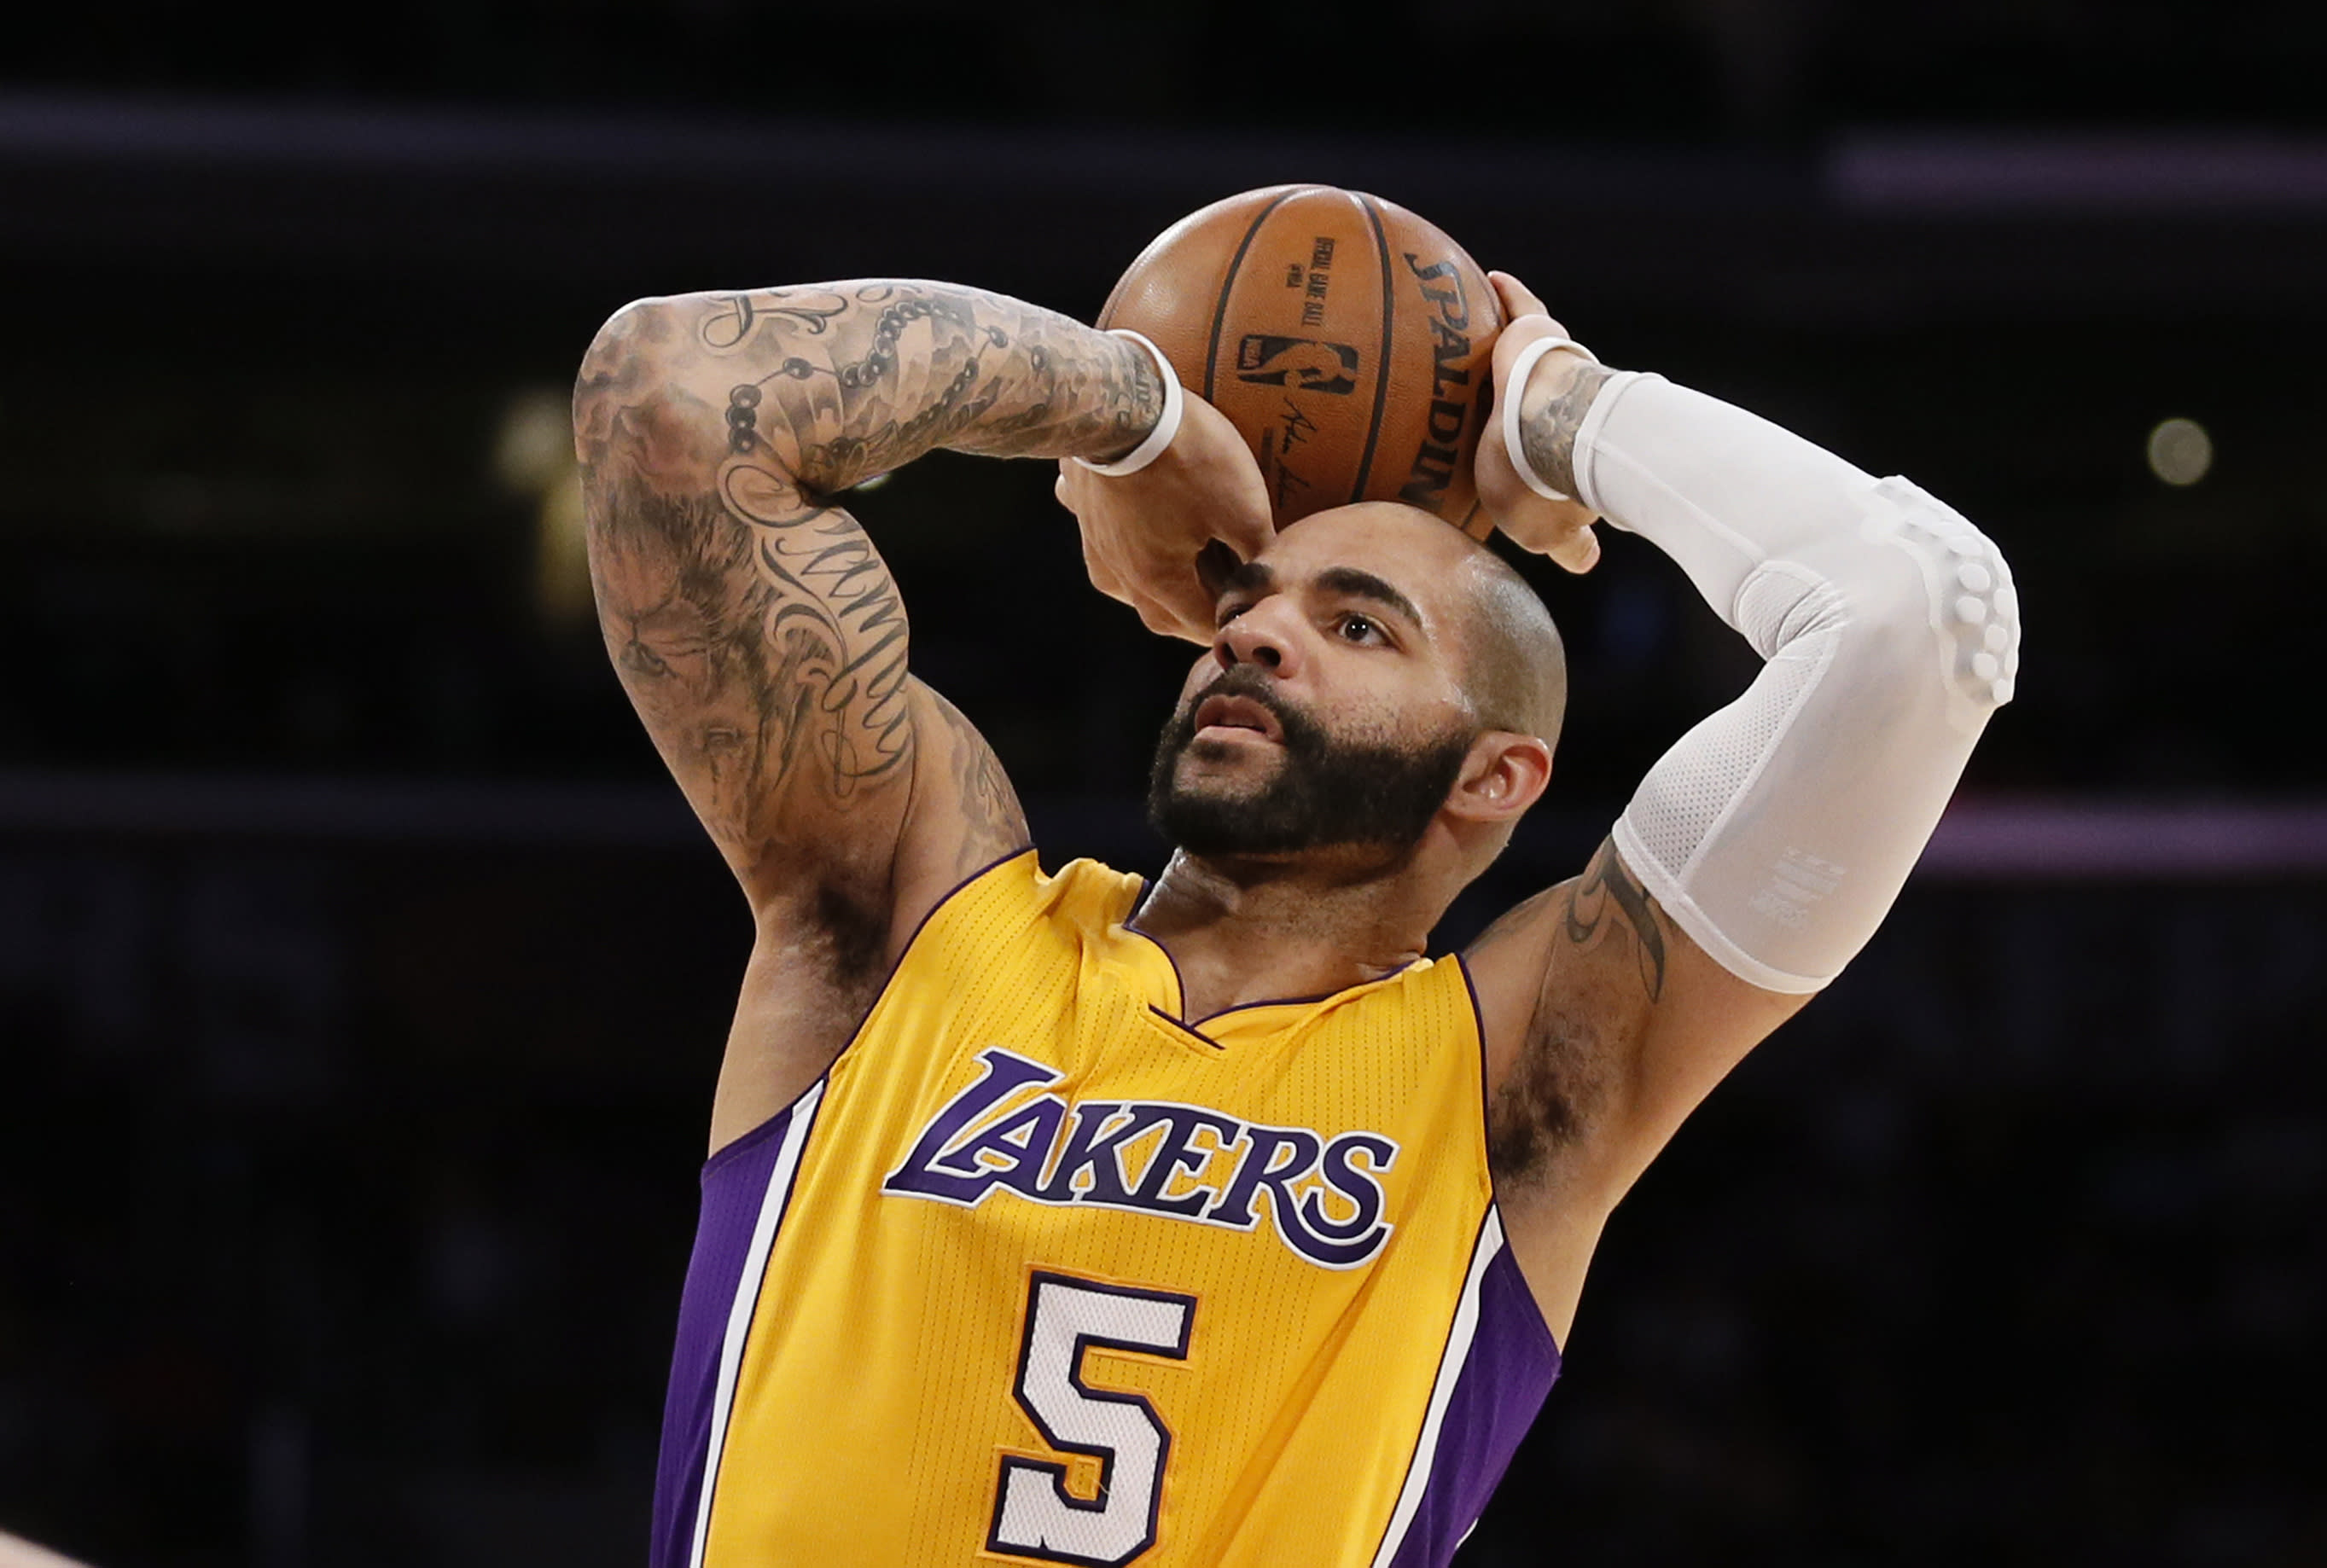 Carlos Boozer planning NBA return